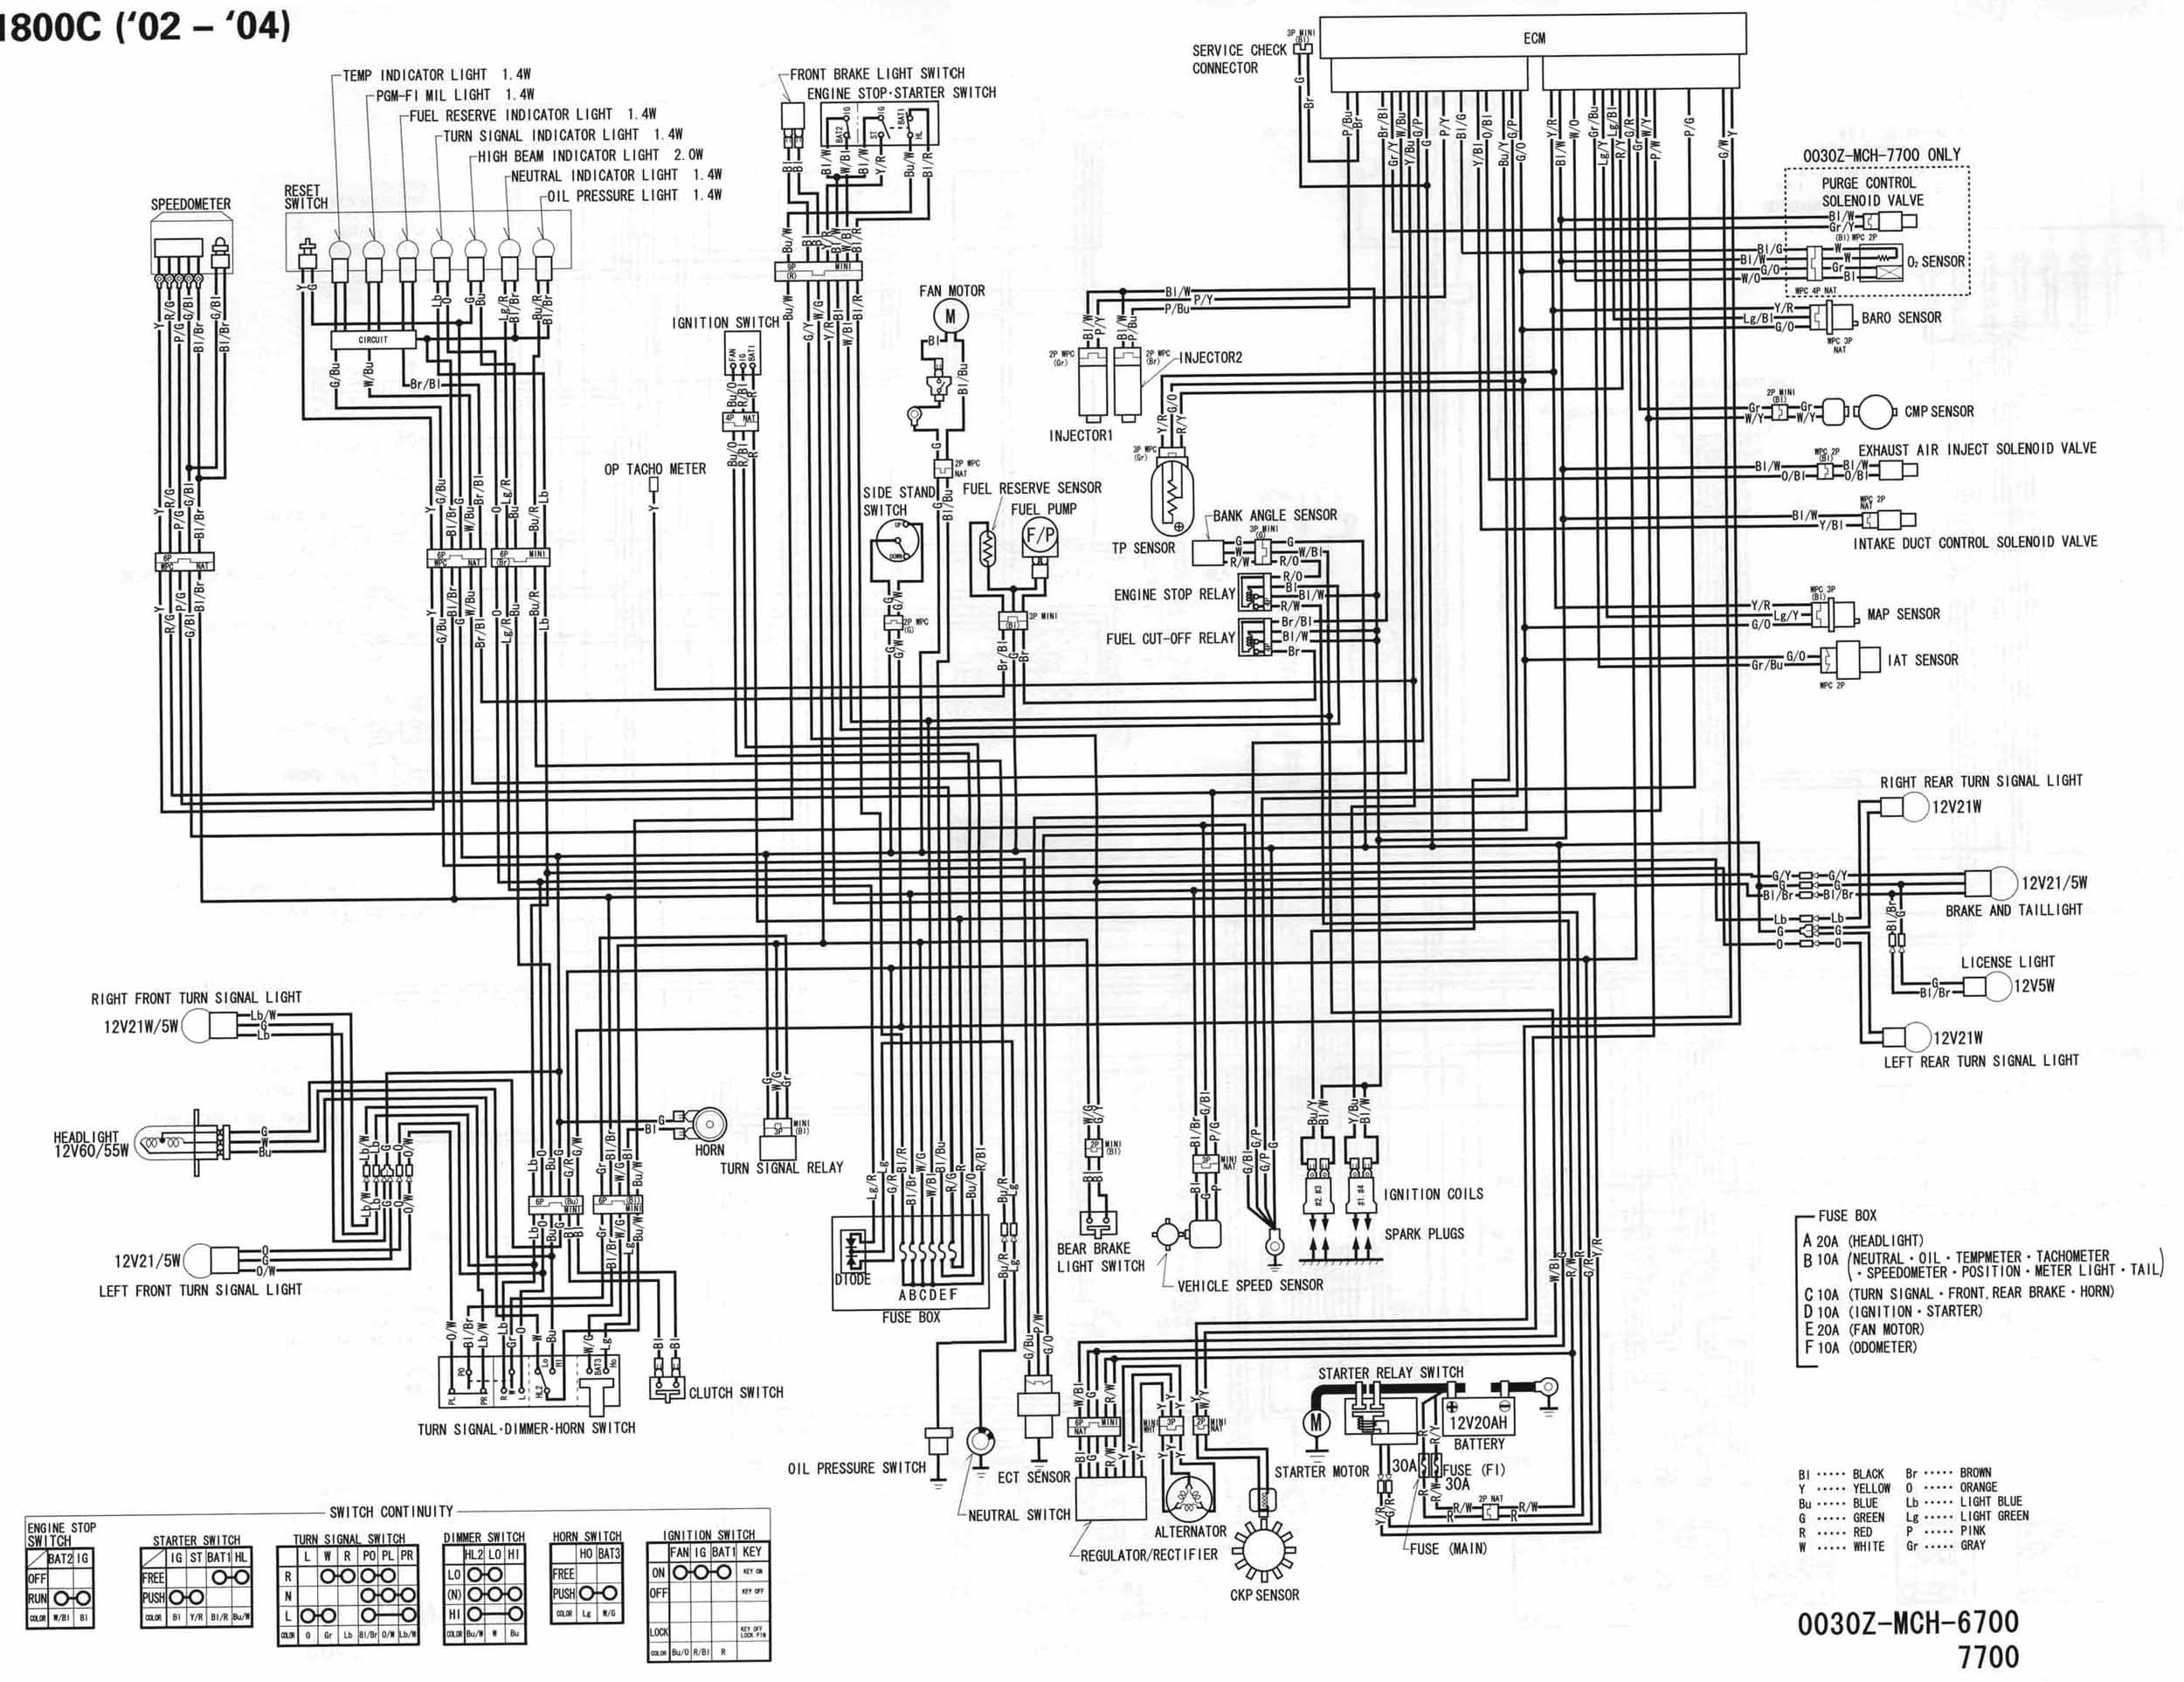 motorcycle wire schematics  bareass choppers motorcycle tech pages 02 04 vtx 1800c schematic